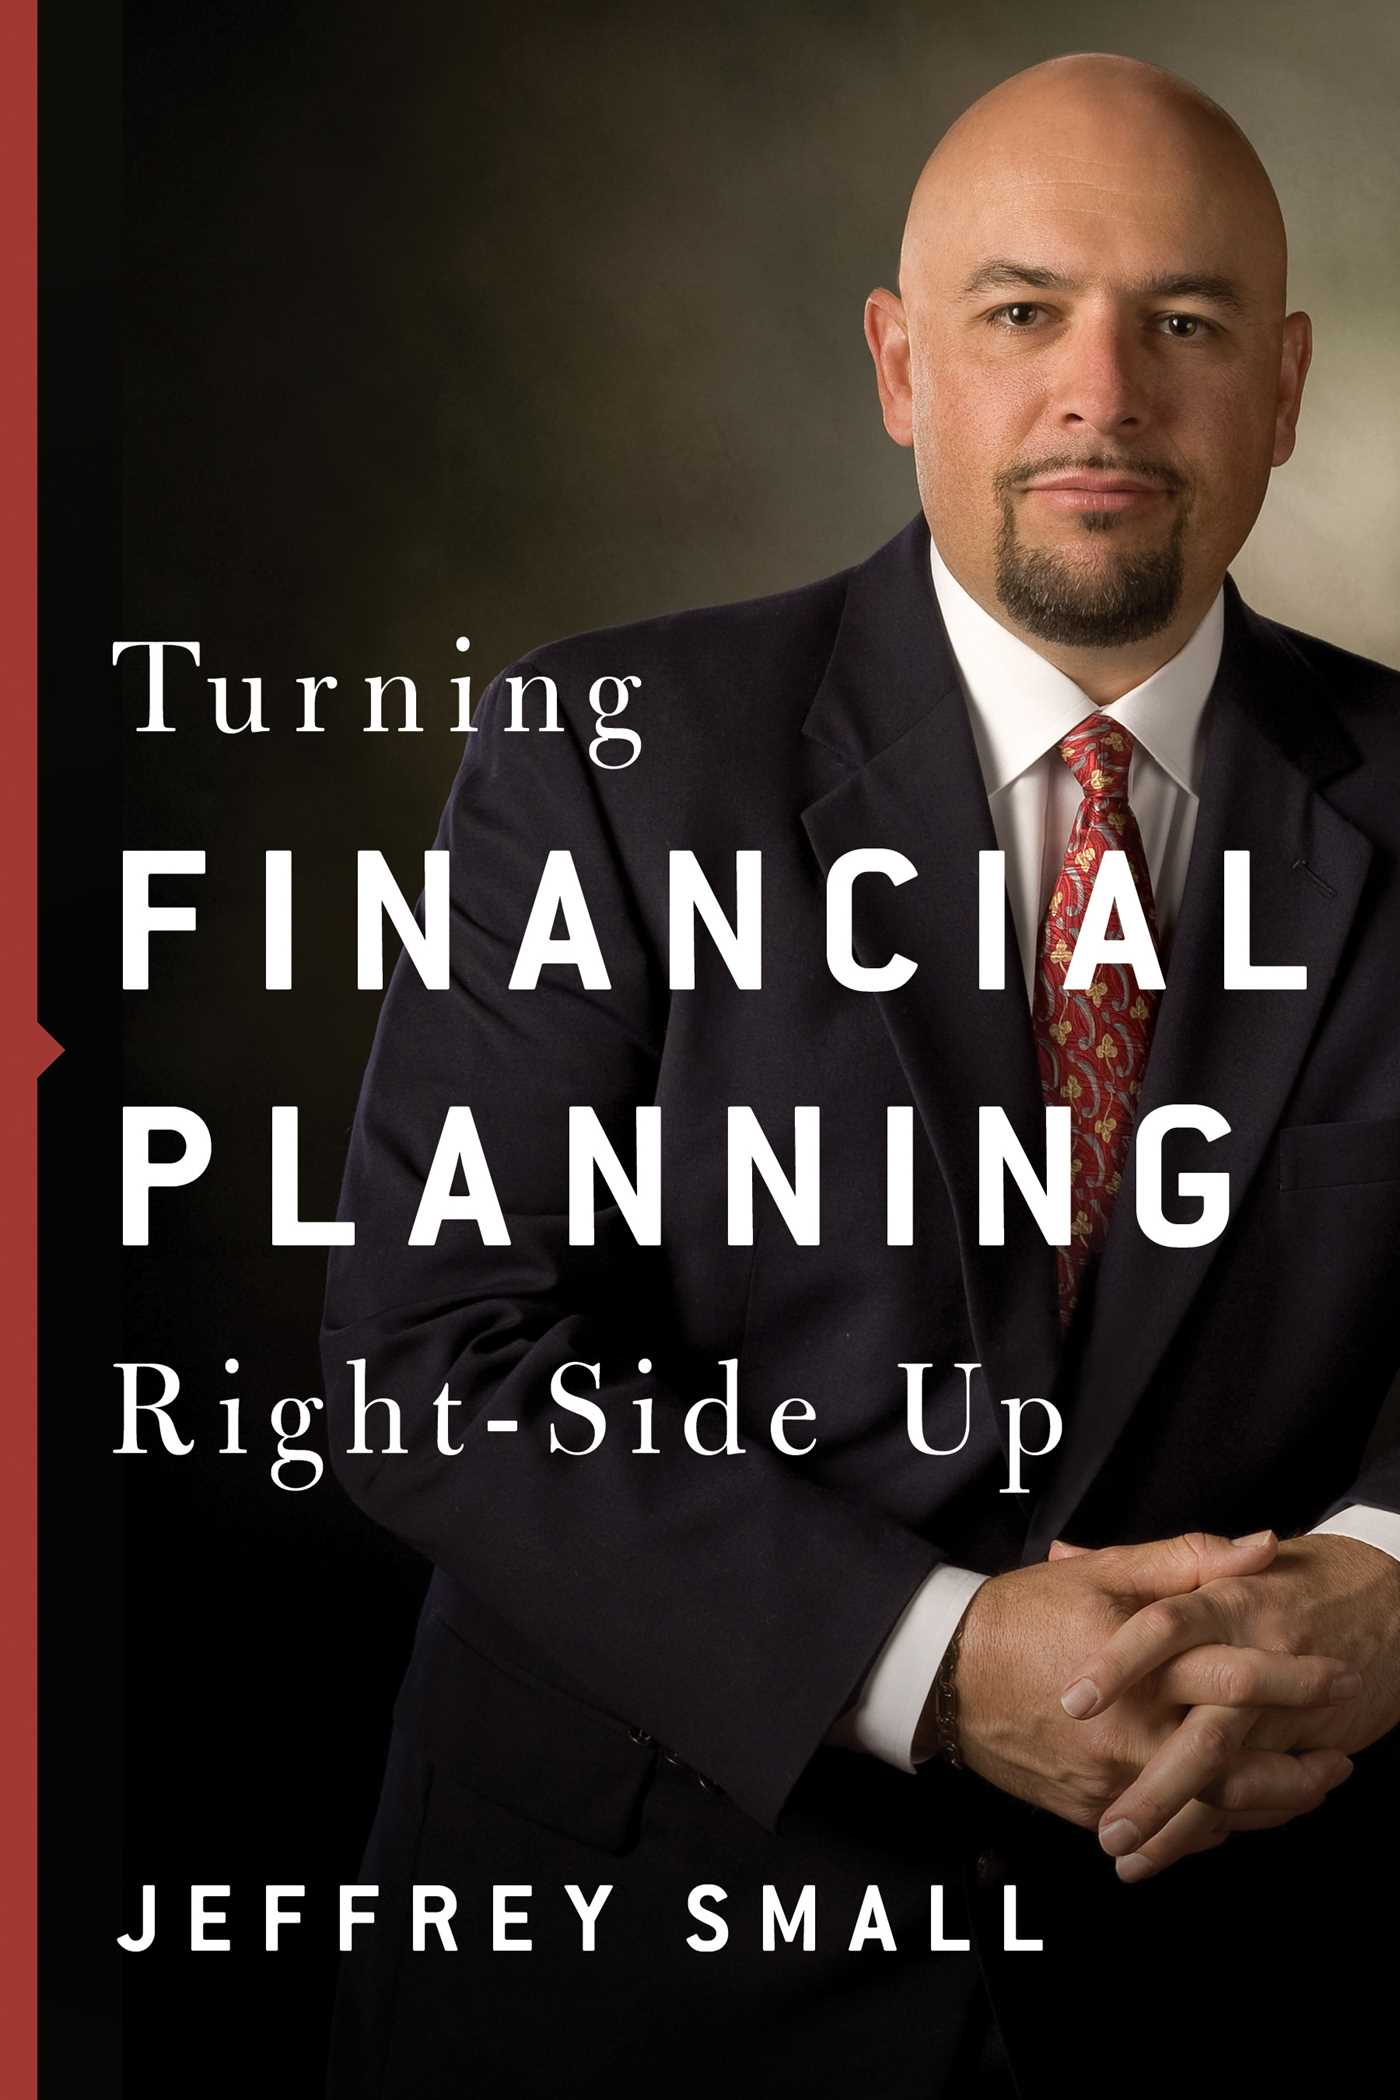 Turning financial planning right side up 9780997544121 hr